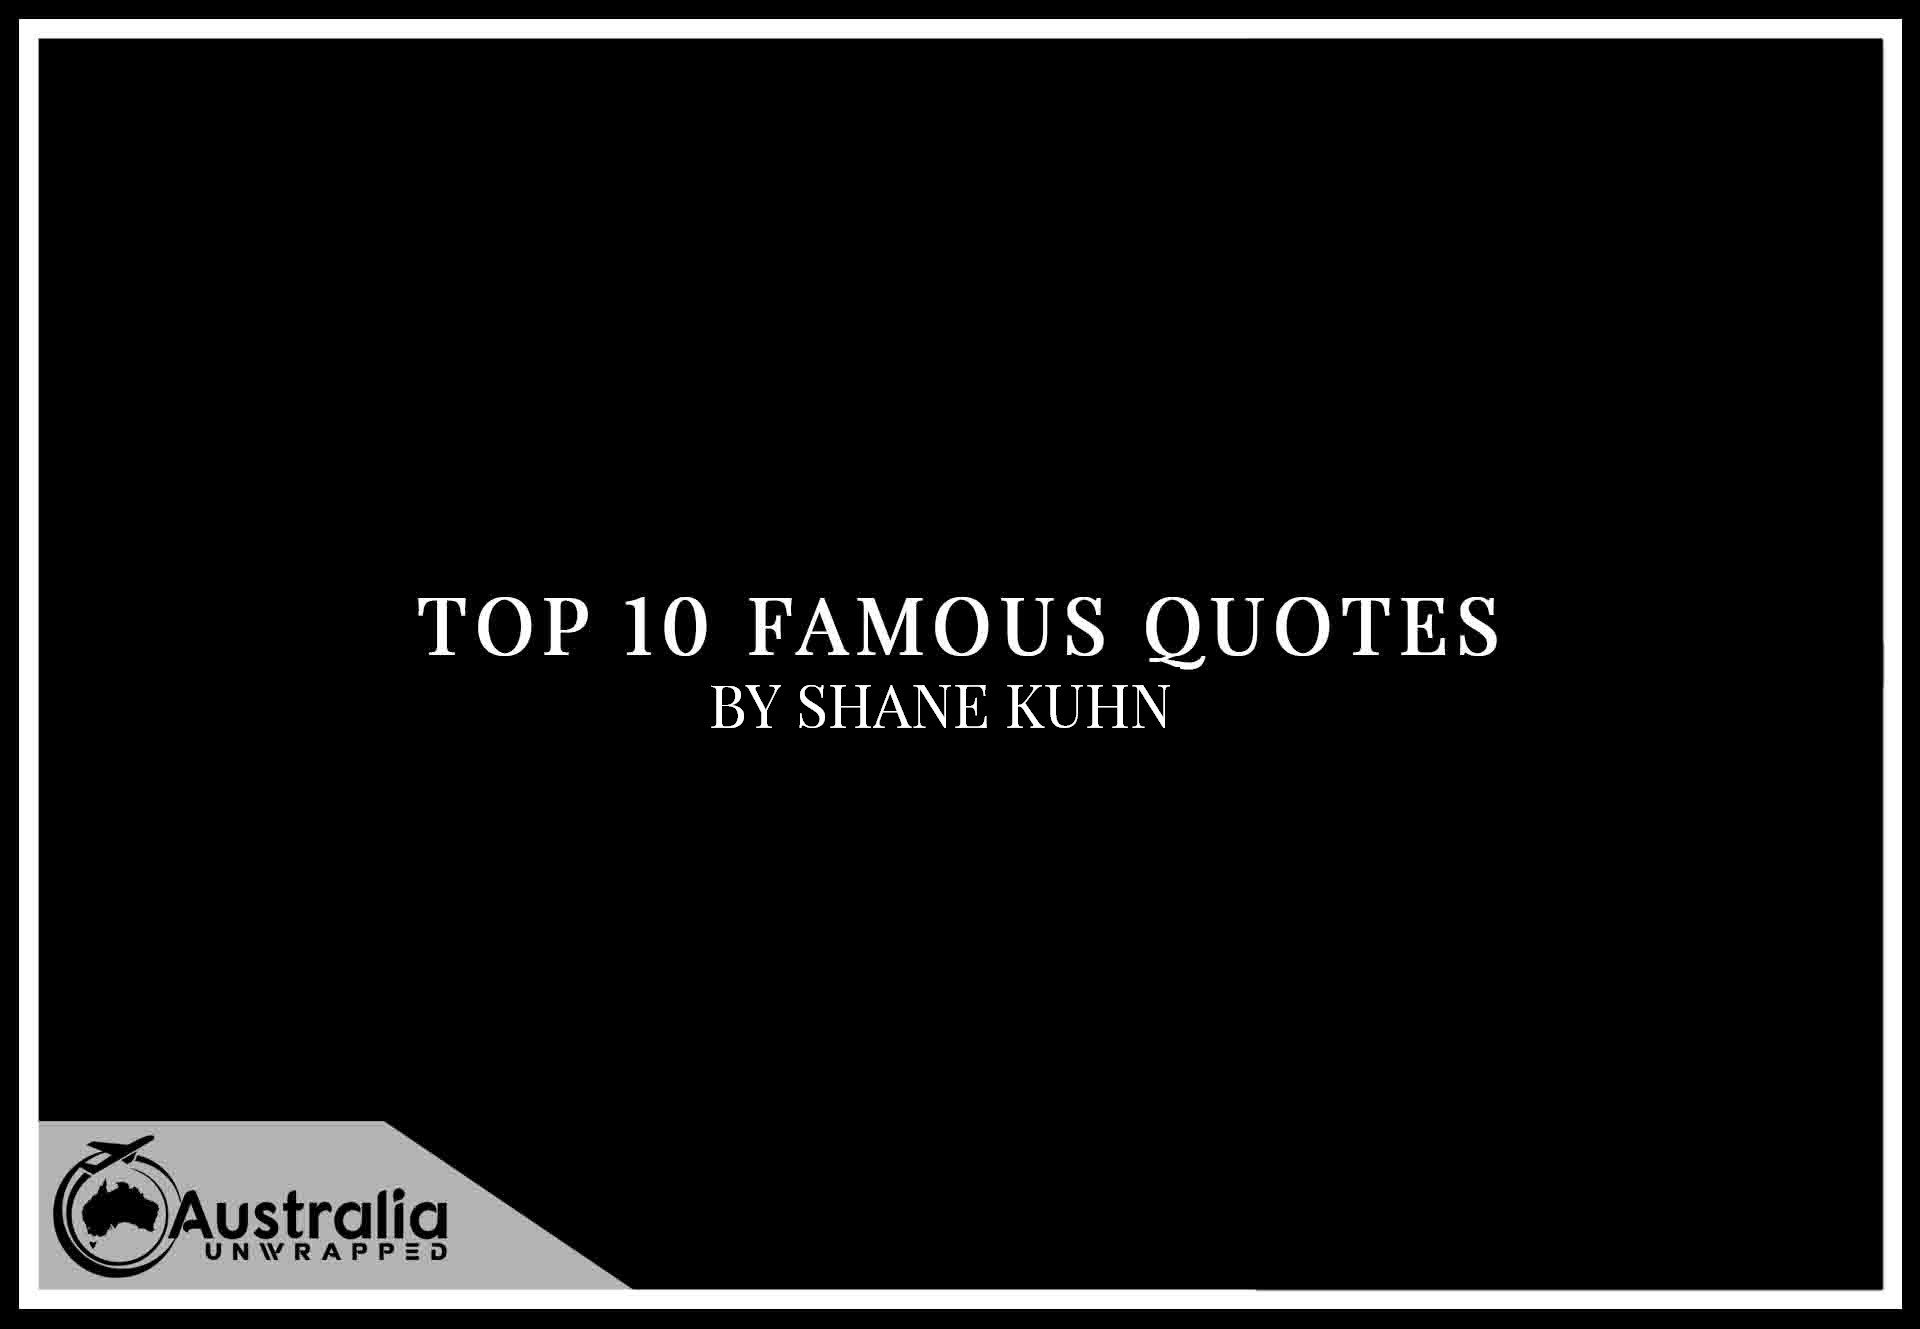 Top 10 Famous Quotes by Author Shane Kuhn